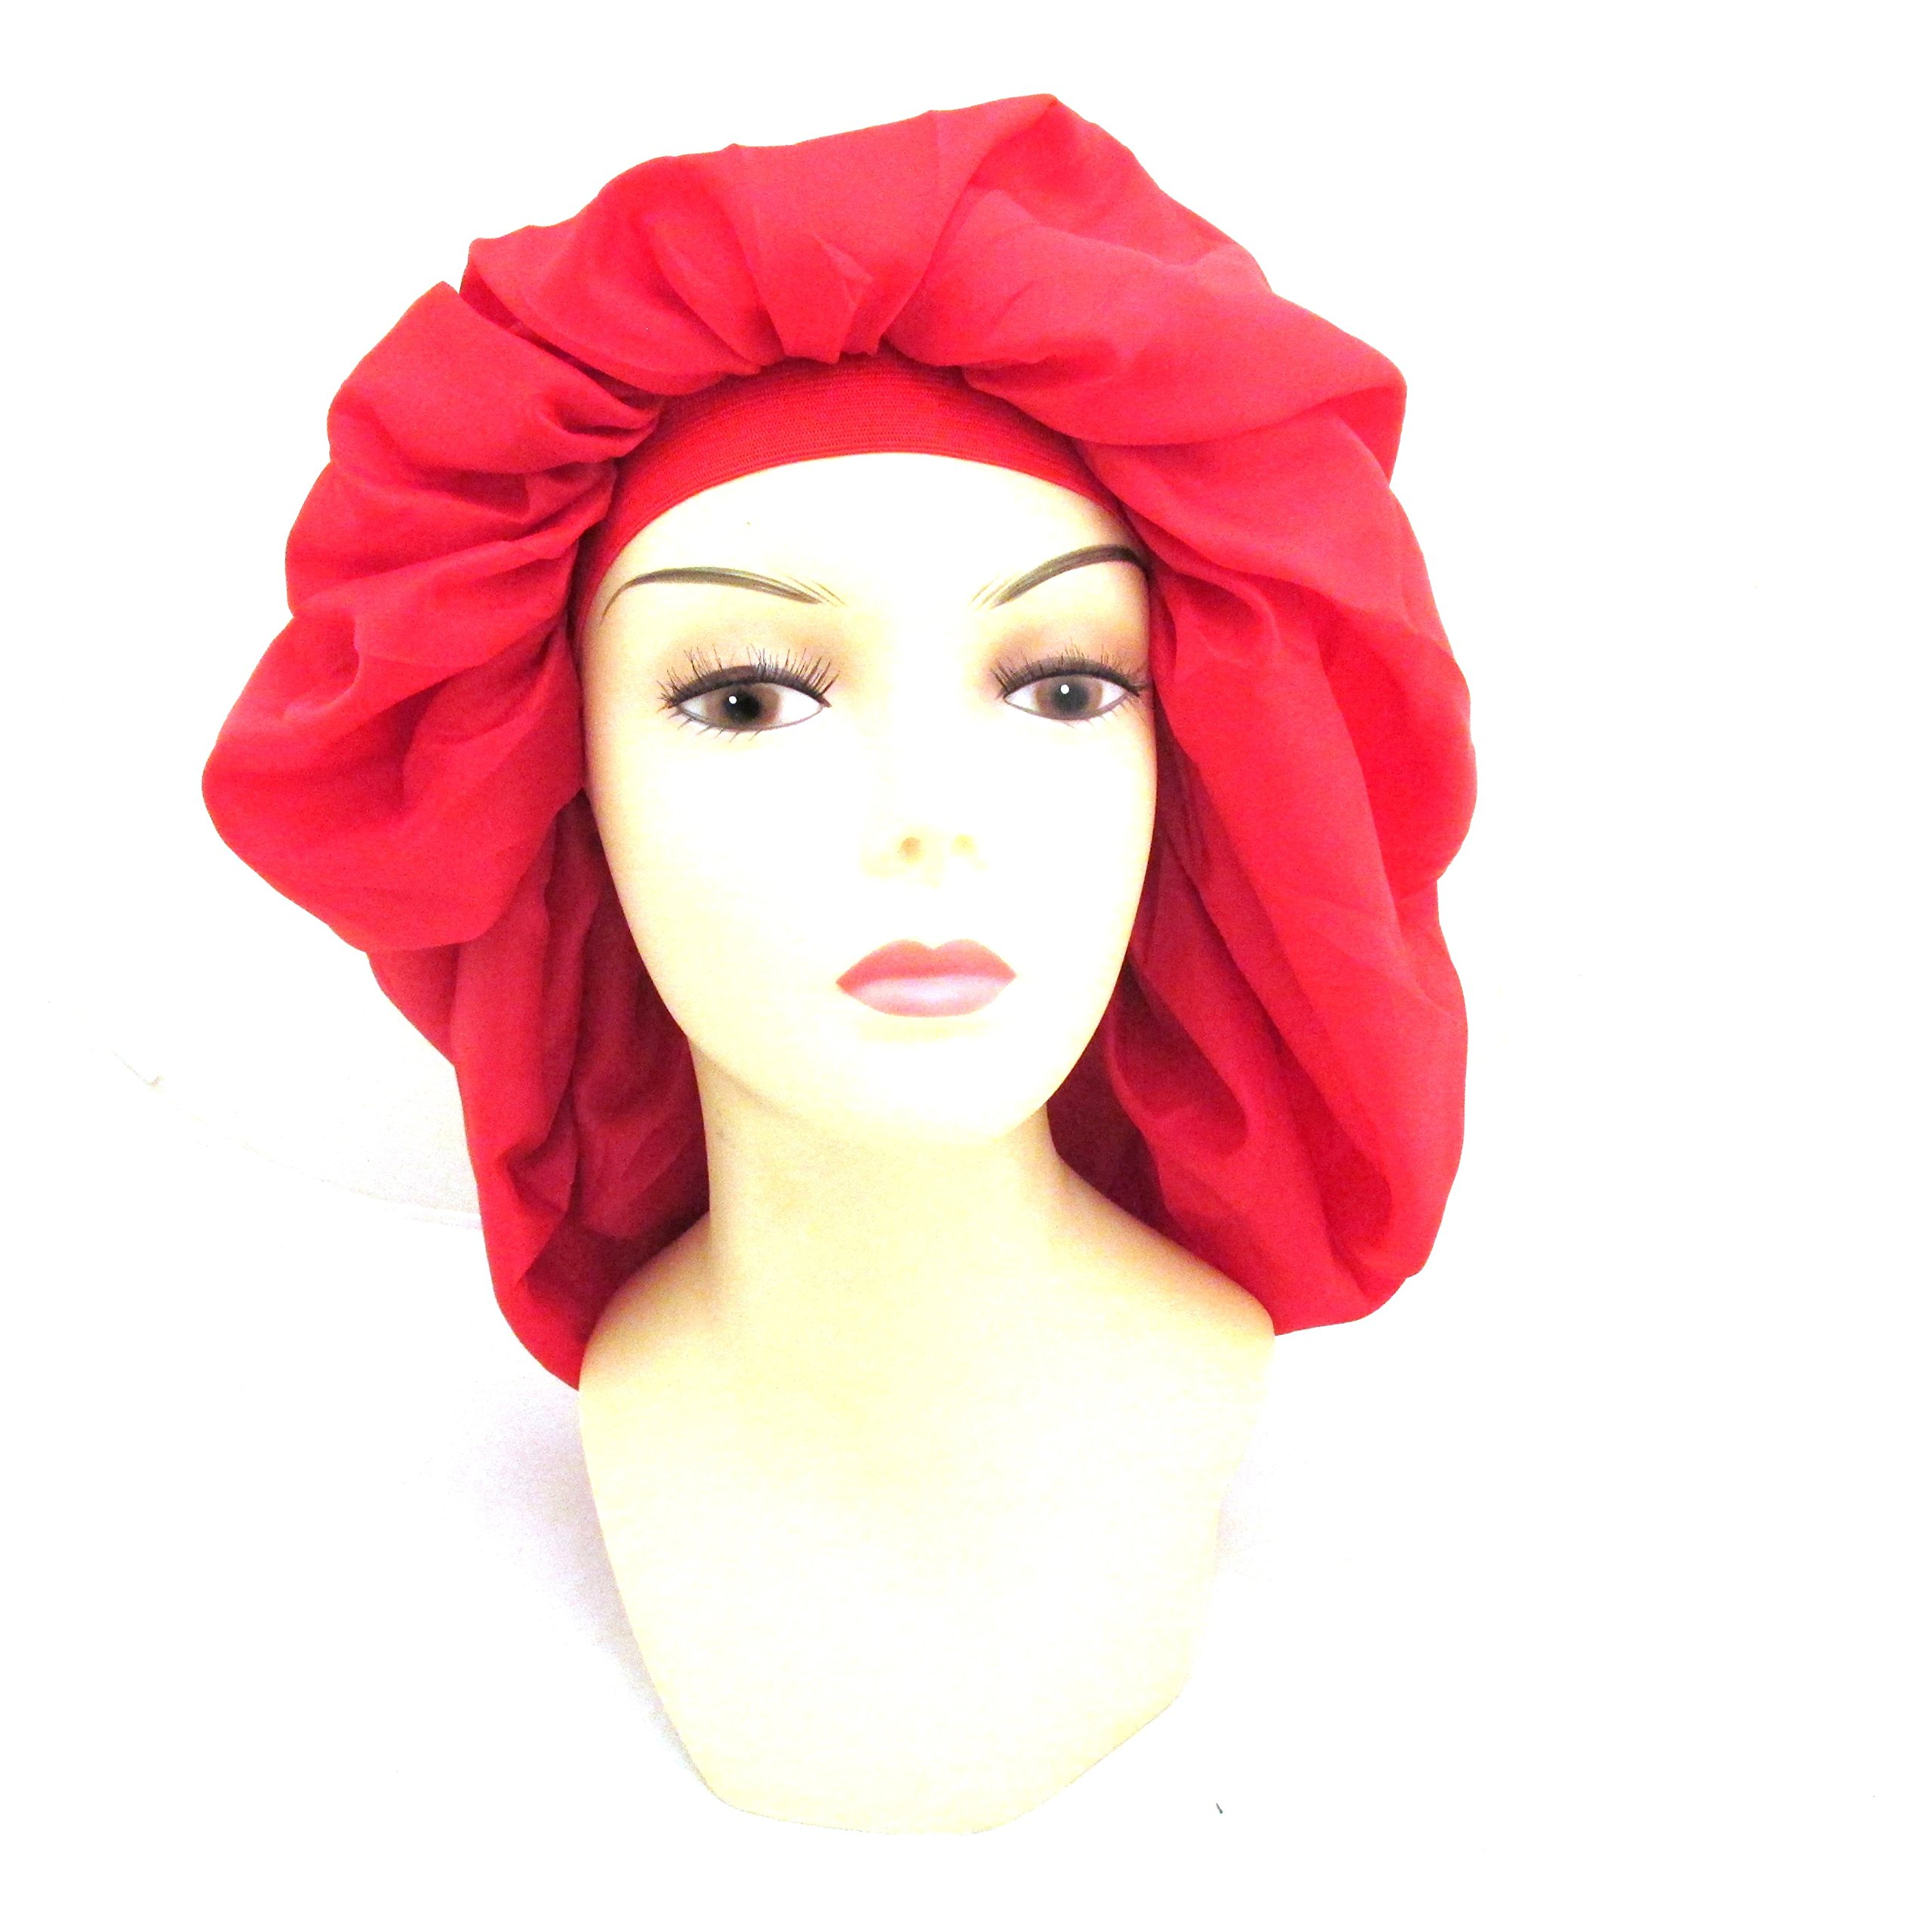 Dream Super Jumbo Night & Day Cap - Red, Satin, fabric, elastic band, cotton, holds hair in place, large, extra large, one size fits all, sleep cap, comfortable, soft material